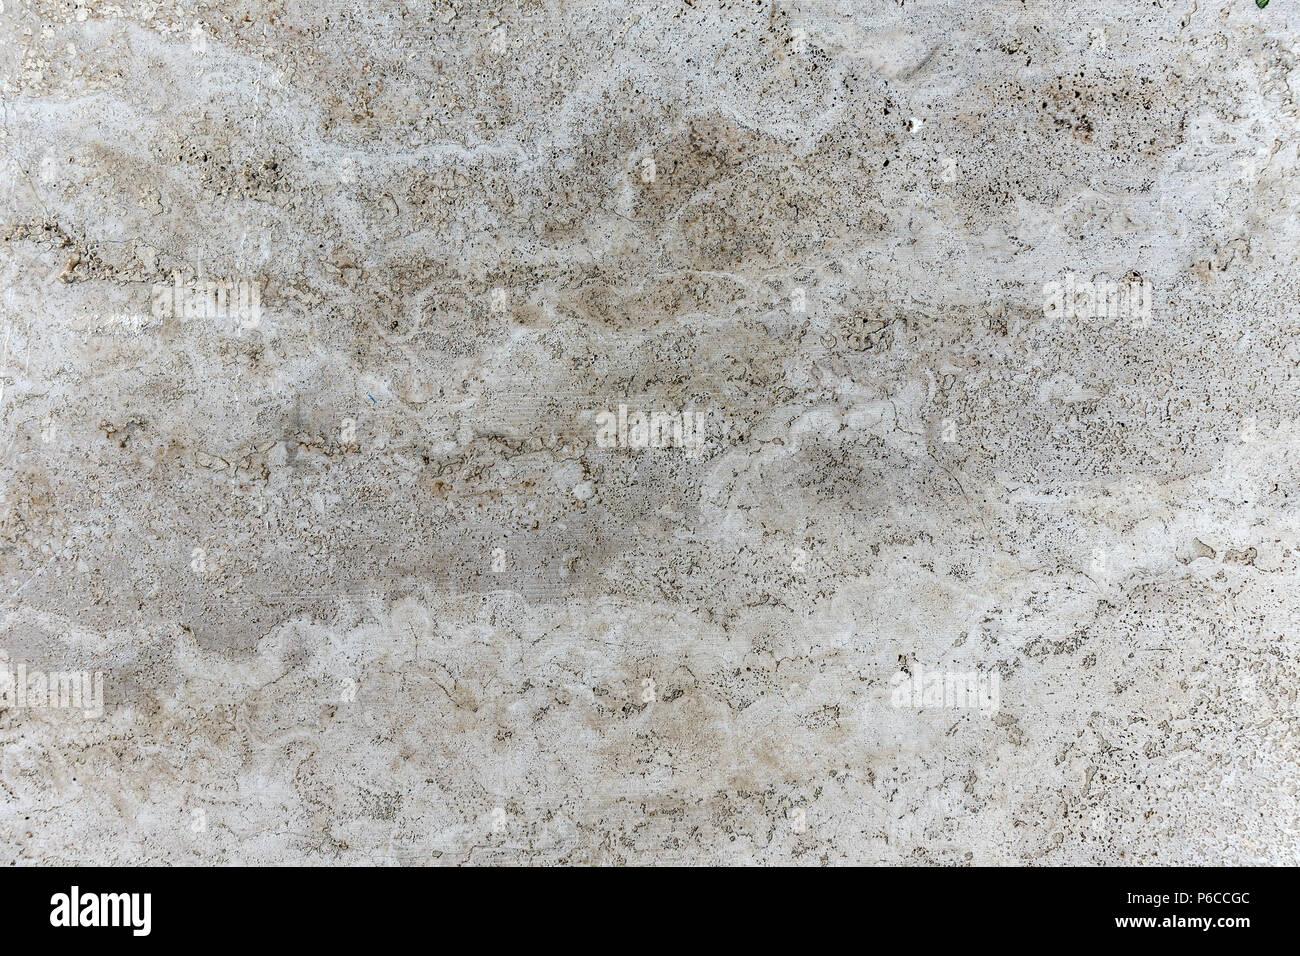 Outdoor polished concrete texture, cement floor texture background - Stock Image